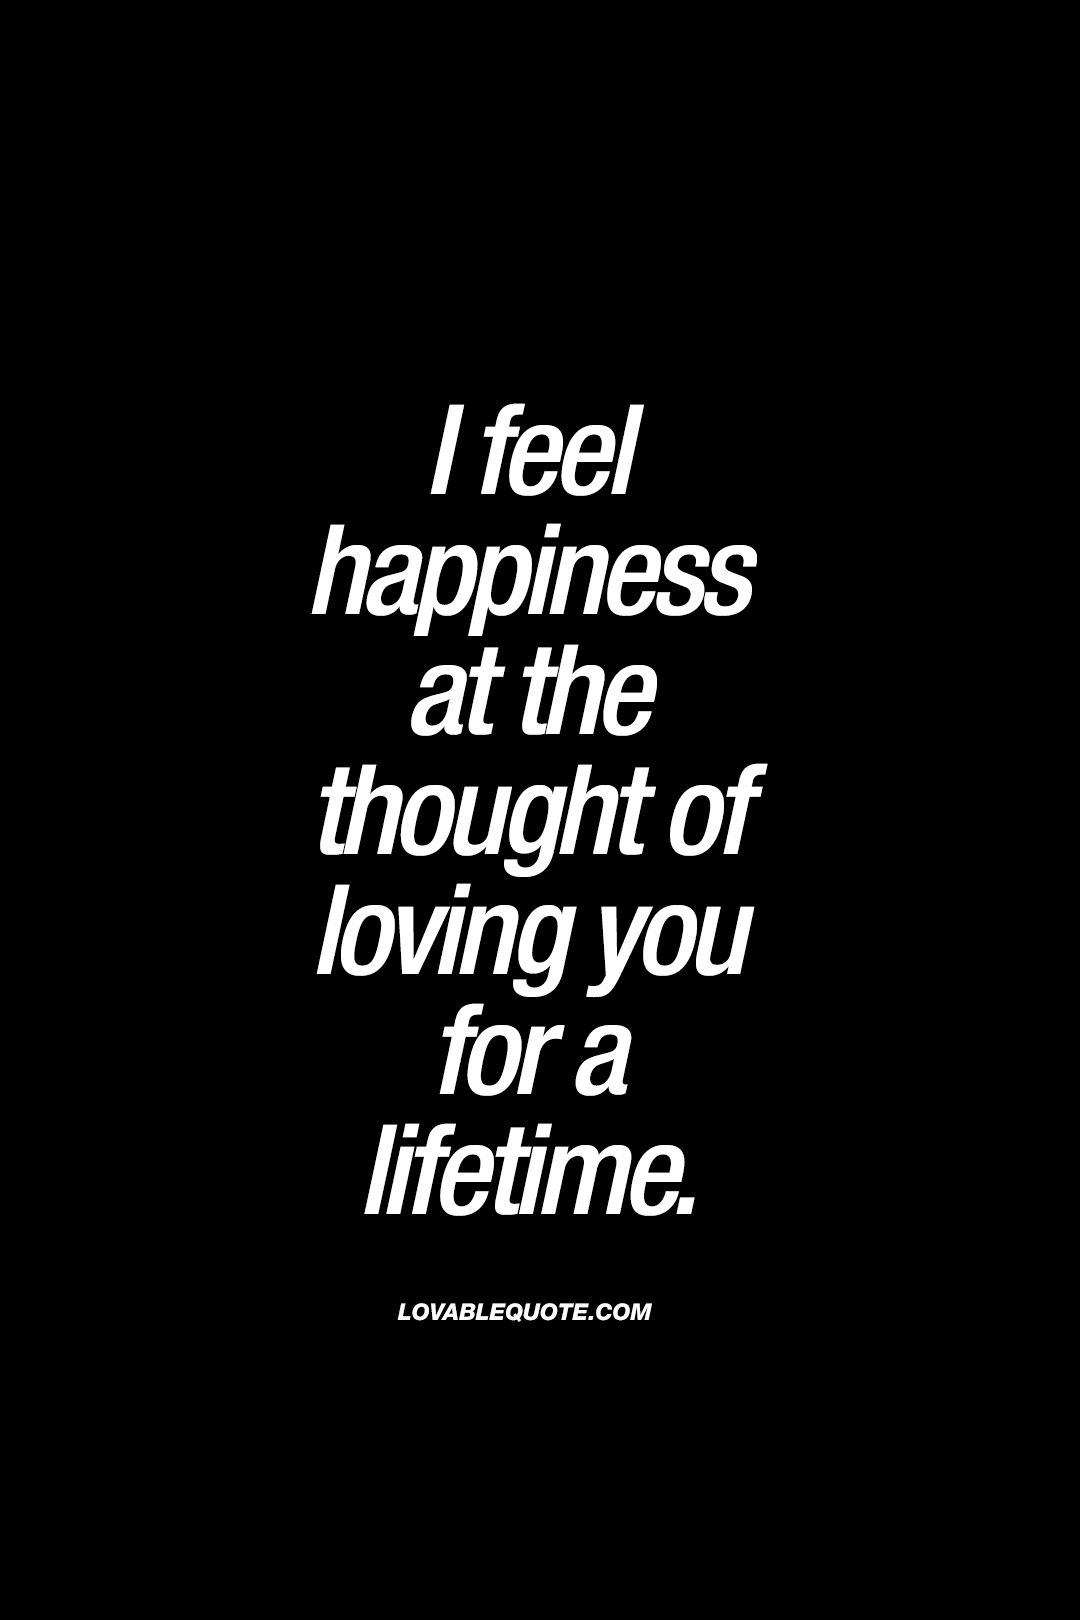 Lovingyou Quotes I Feel Happiness At The Thought Of Loving You For A Lifetime .